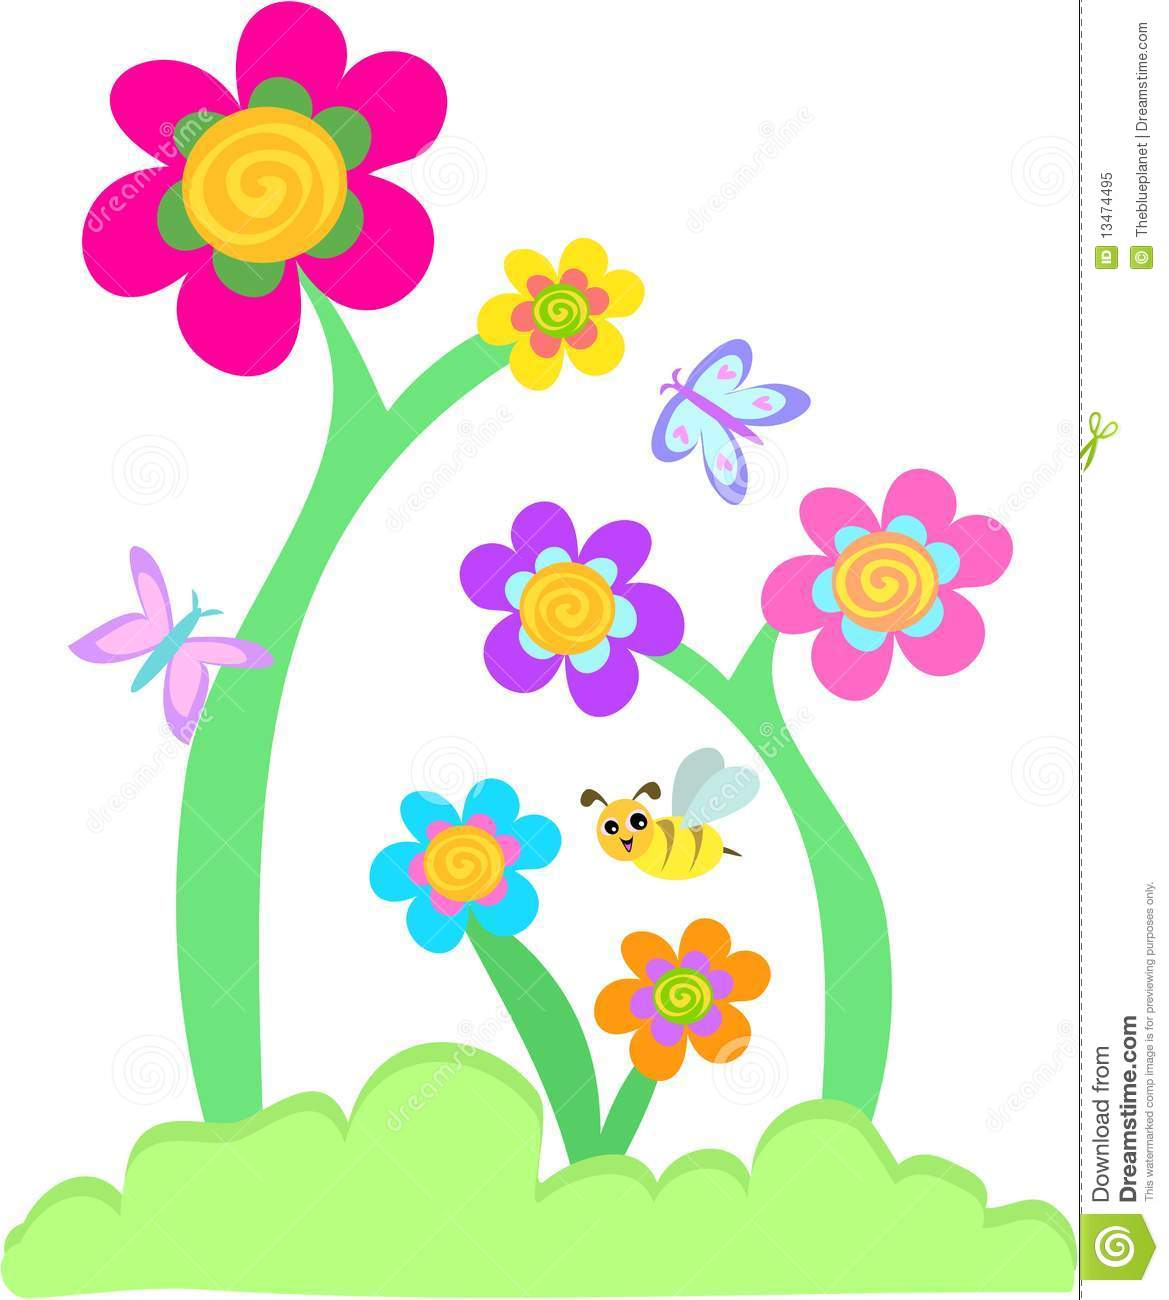 Whimsical flowers clip art picture freeuse library Whimsical Flowers Clipart - Clipart Kid picture freeuse library